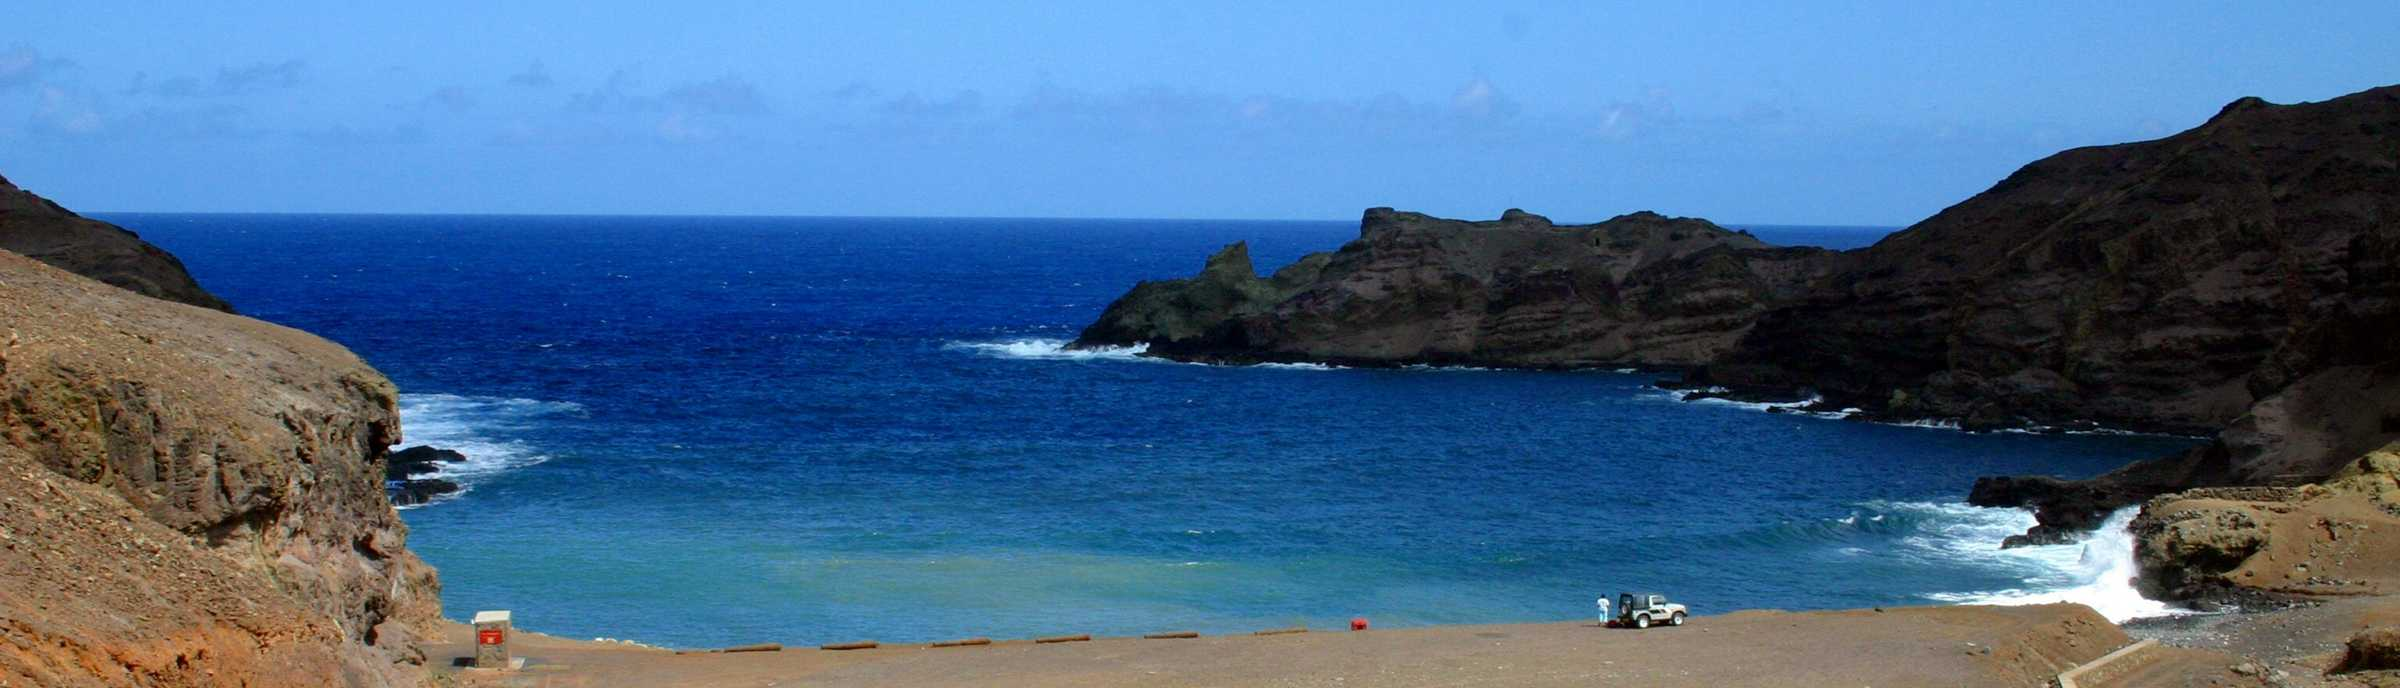 St Helena Sandy Bay Beach